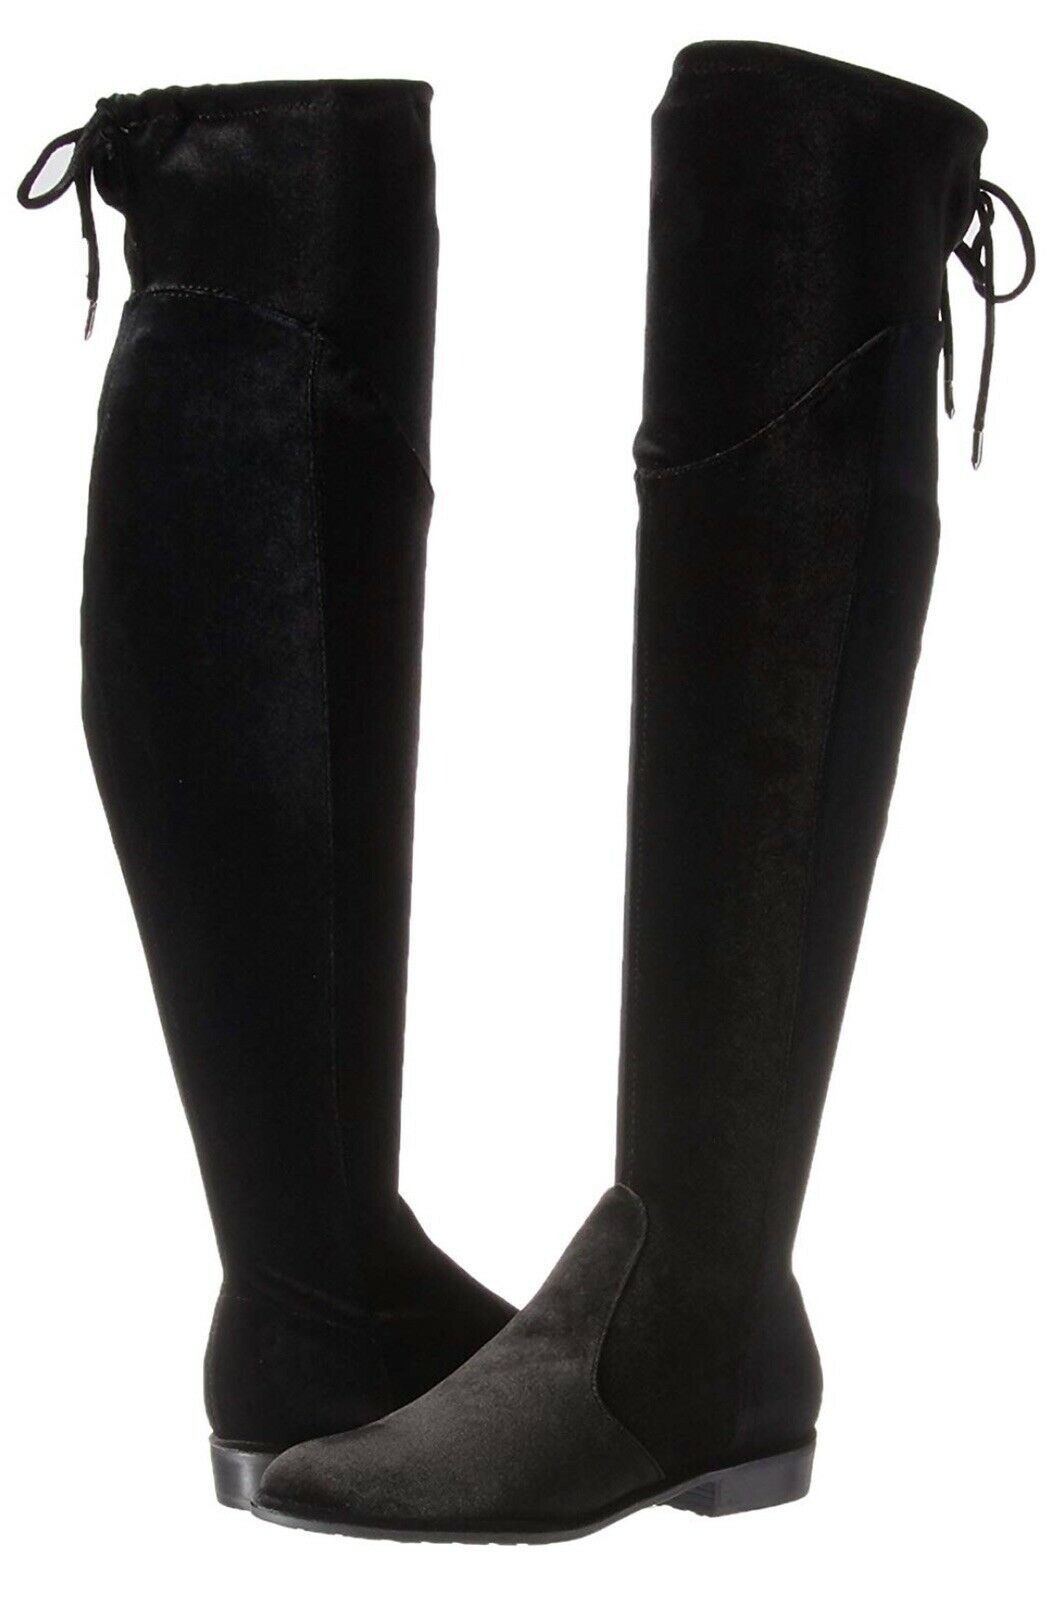 Marc Fisher Faux Suede Velvet Over-the-Knee Boots Hulie Black 6 M NEW A295022